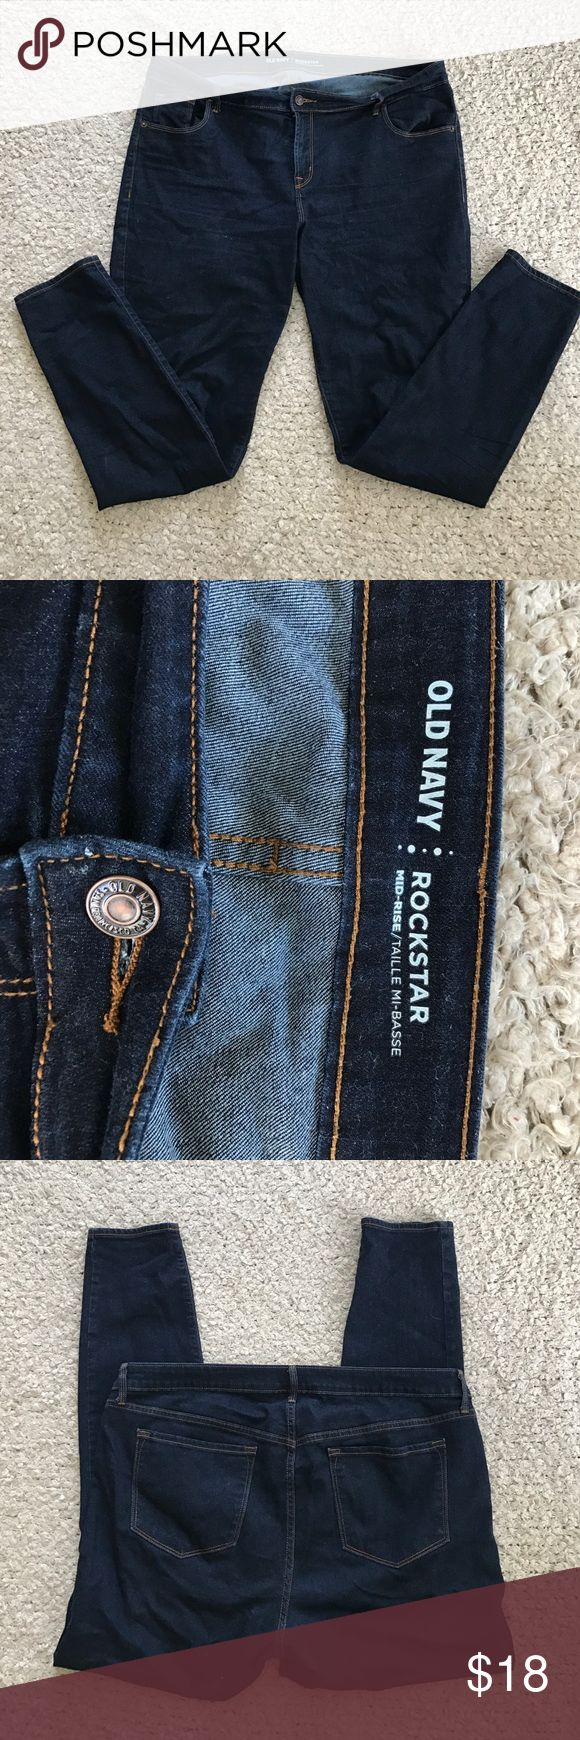 Old Nacy rockstar jeans dark Size 18 long mid rise style. Worn only several times. Old Navy Jeans Skinny